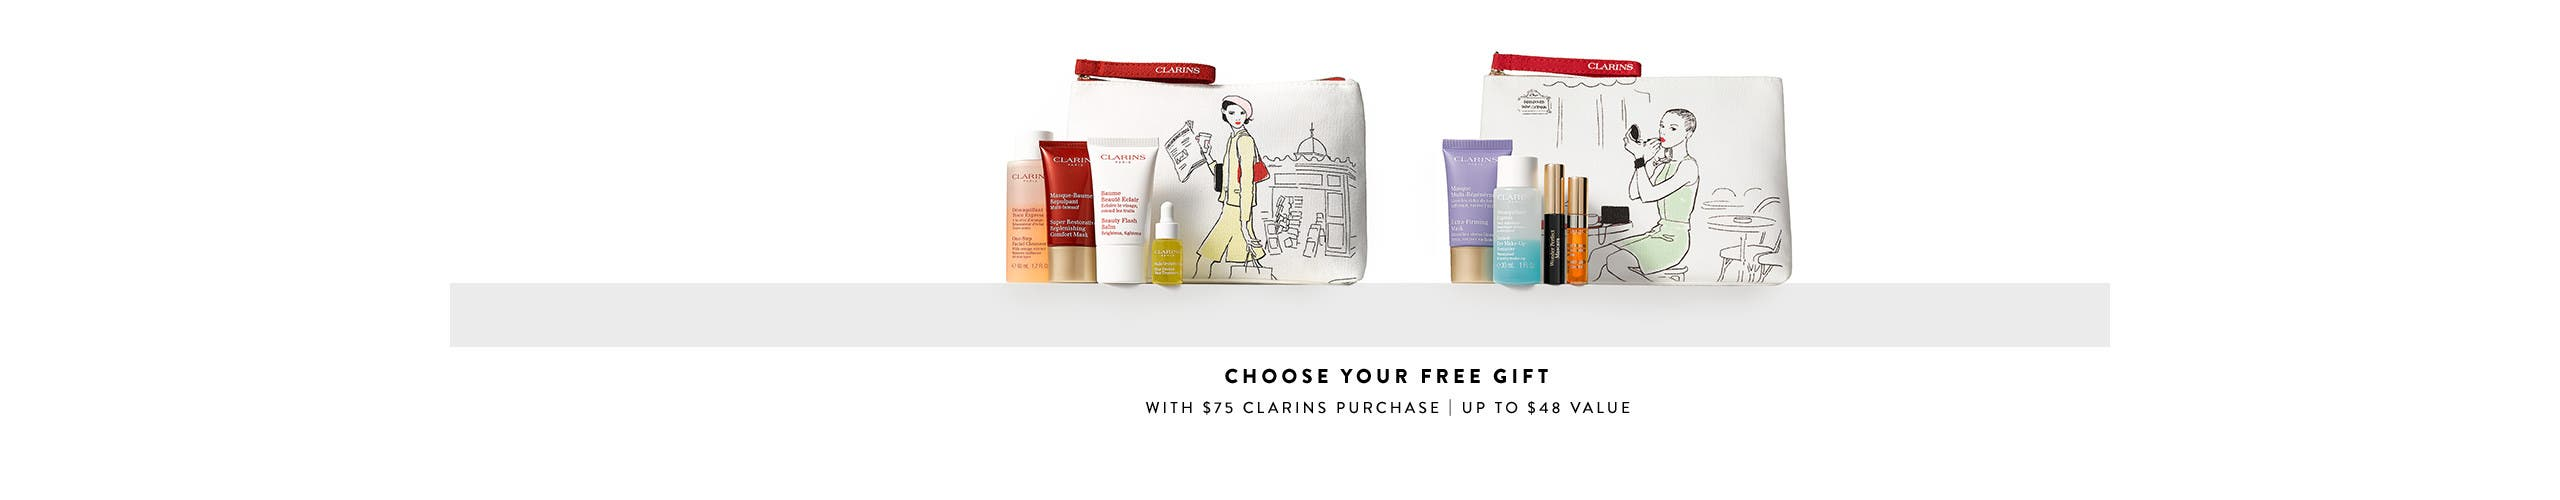 Choose your free gift with $75 Clarins purchase. Up to $48 value.